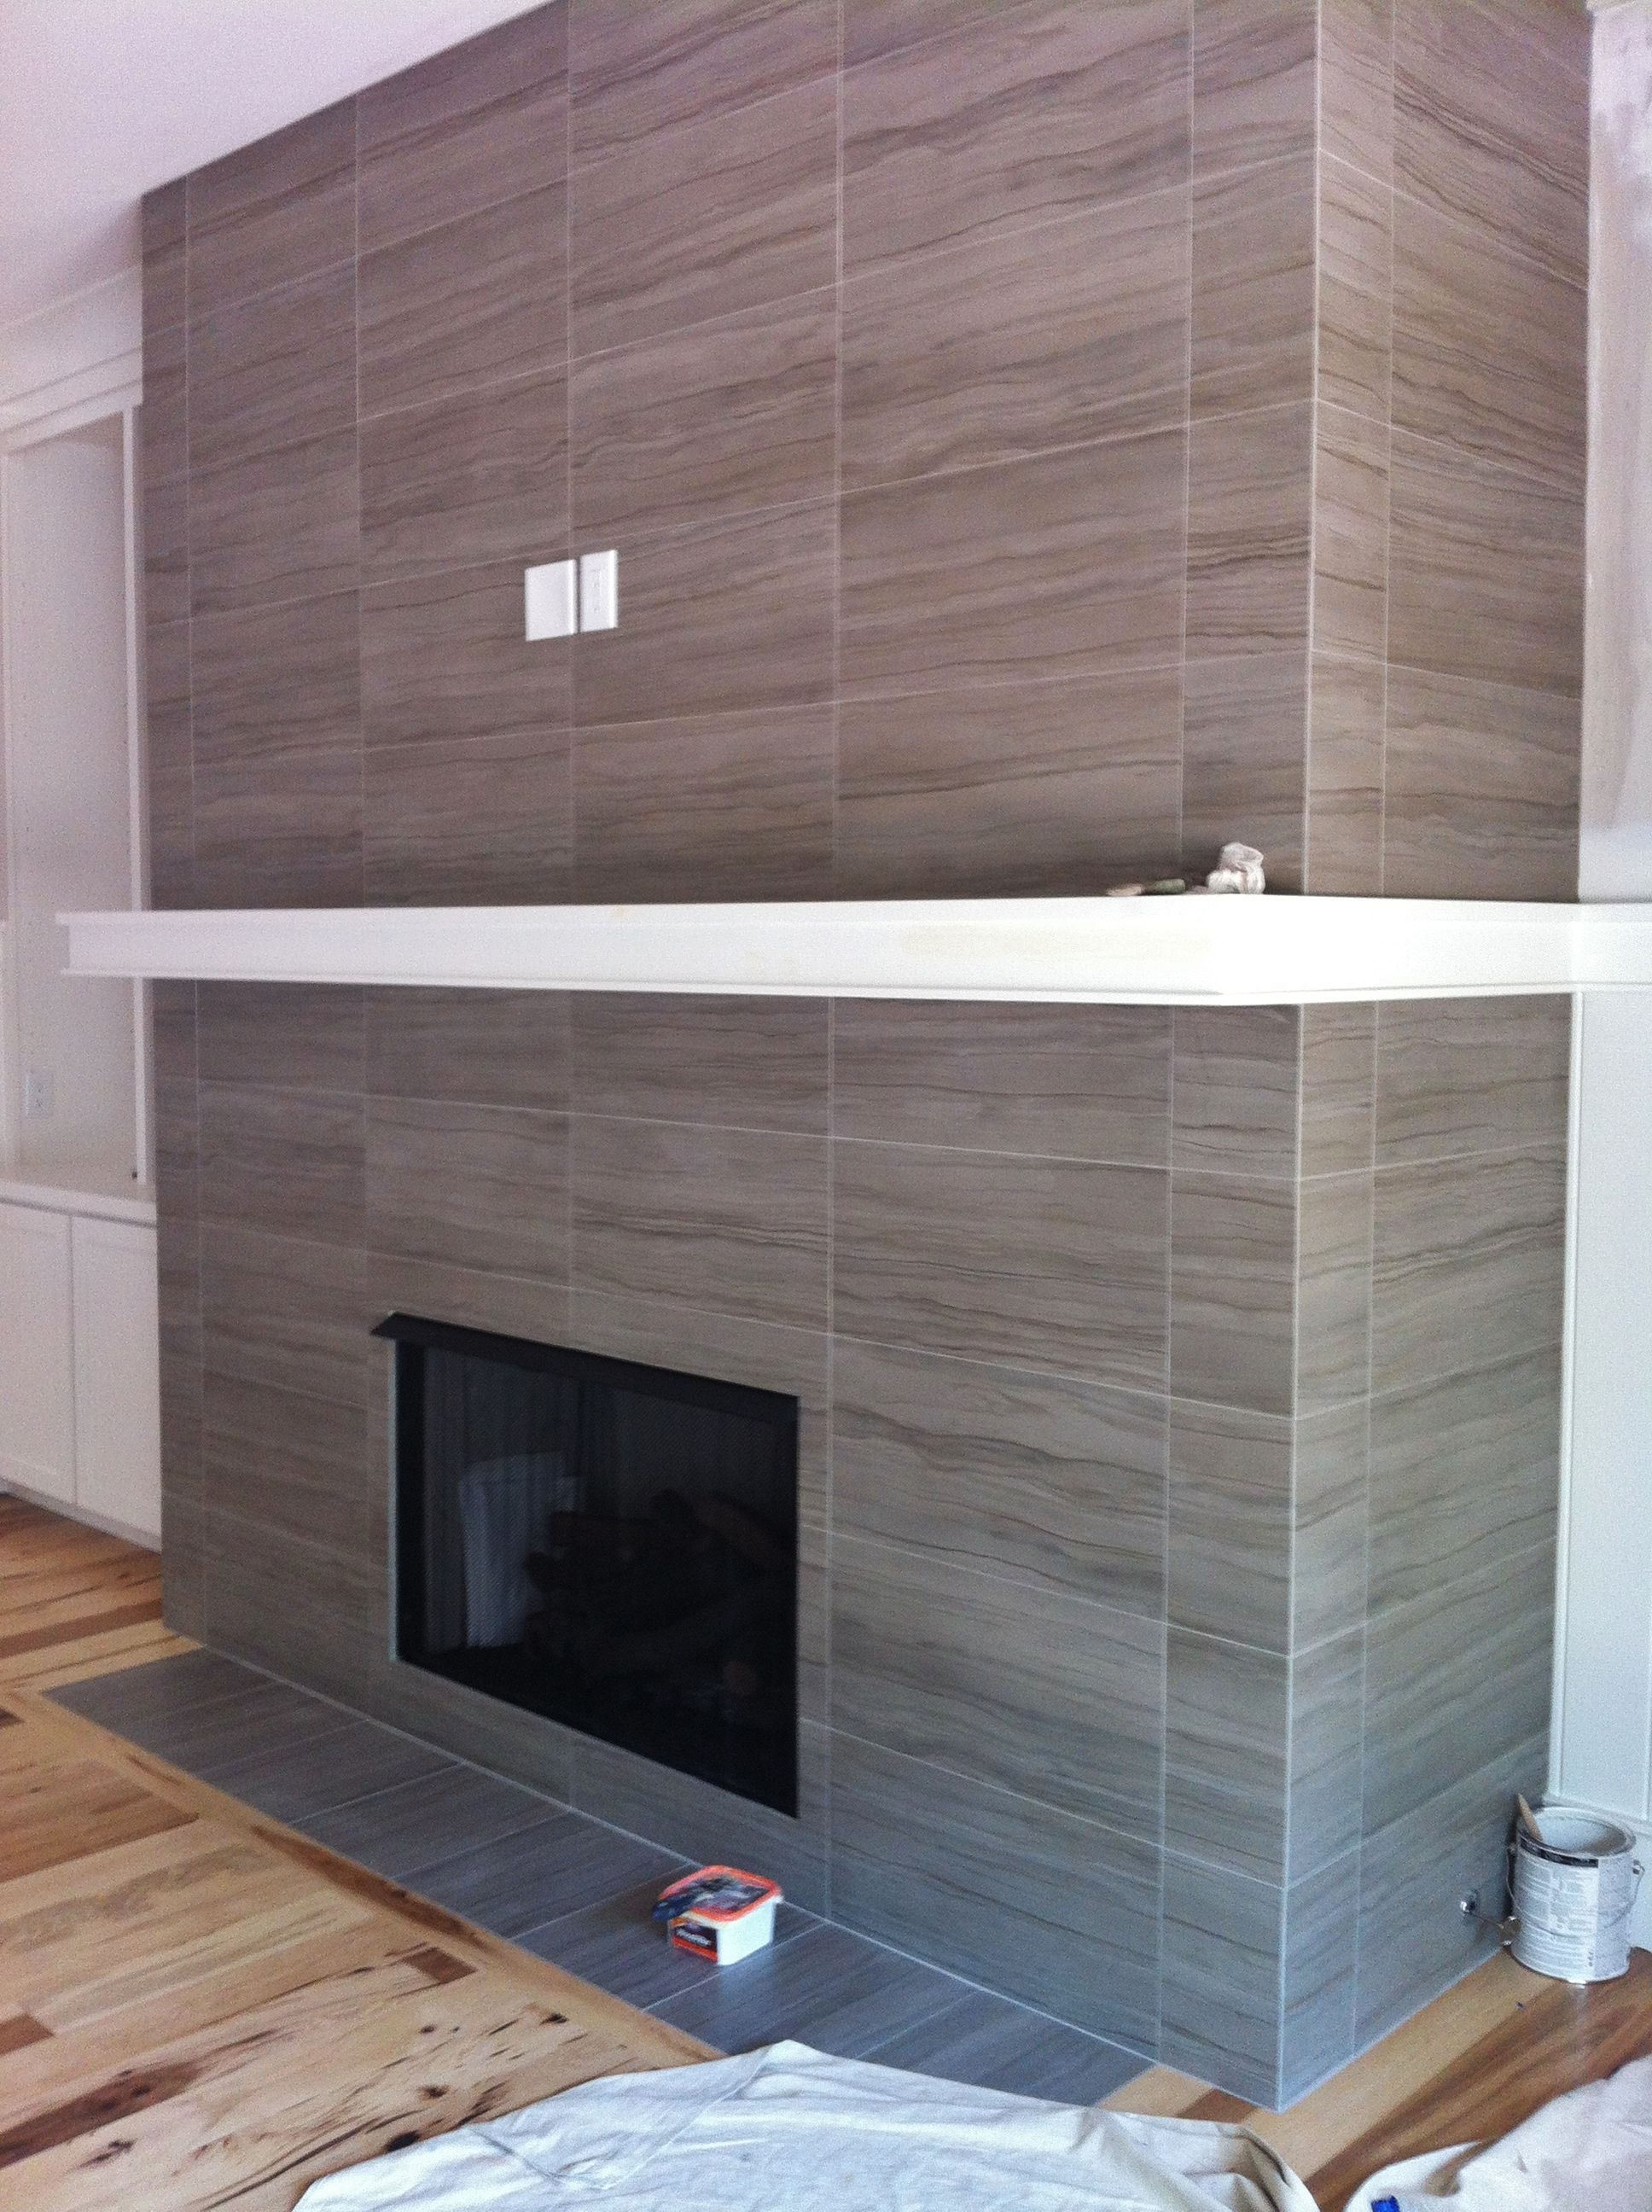 12x24 porcelain tile on fireplace wall